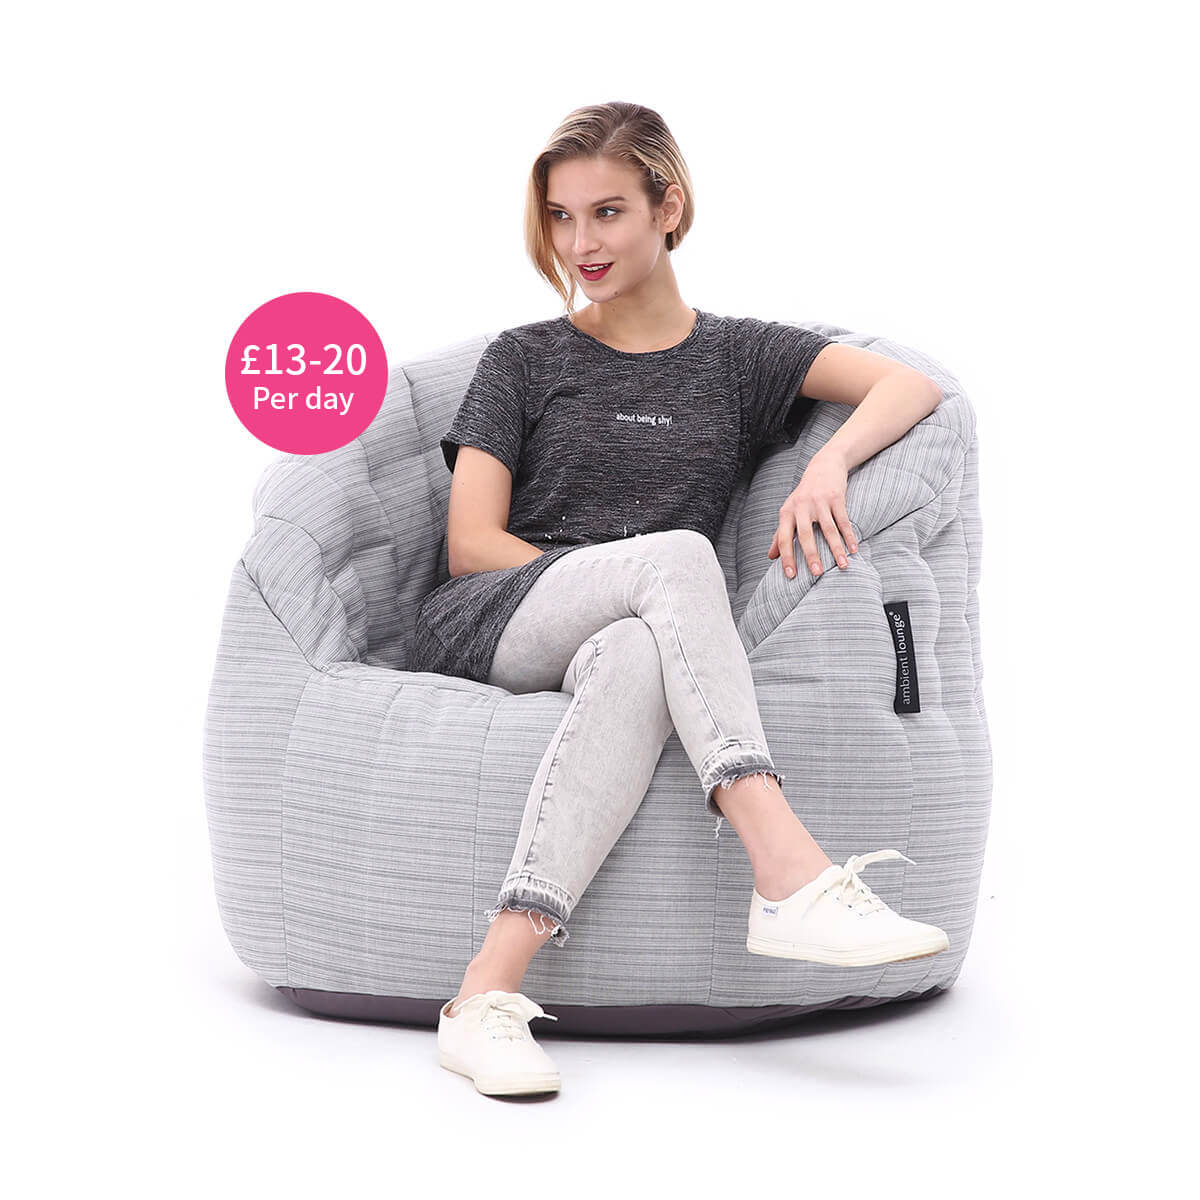 Marvelous Uk Premium Bean Bag Hire Classy Uk Bean Bag Hire For Short Links Chair Design For Home Short Linksinfo